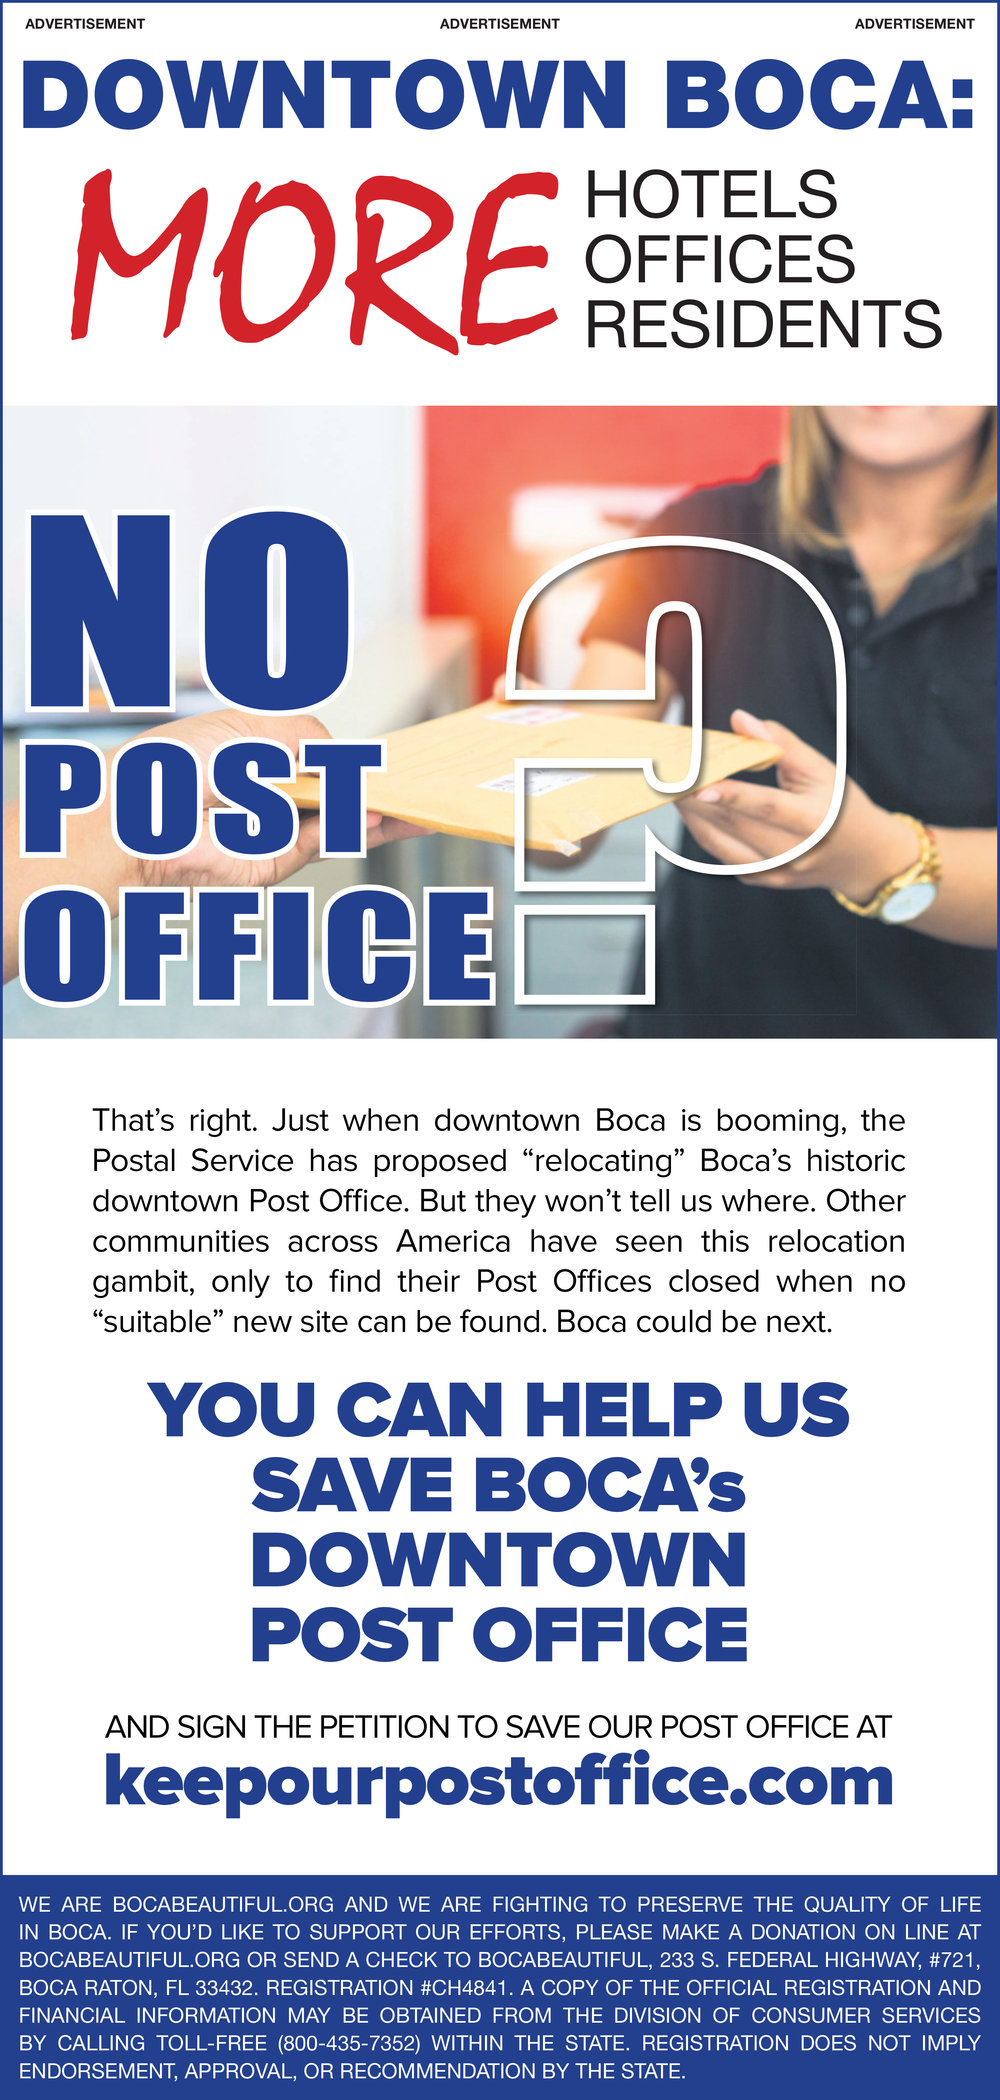 SUN SENTINEL AD TO HELP SAVE BOCA's DOWNTOWN POST OFFICE